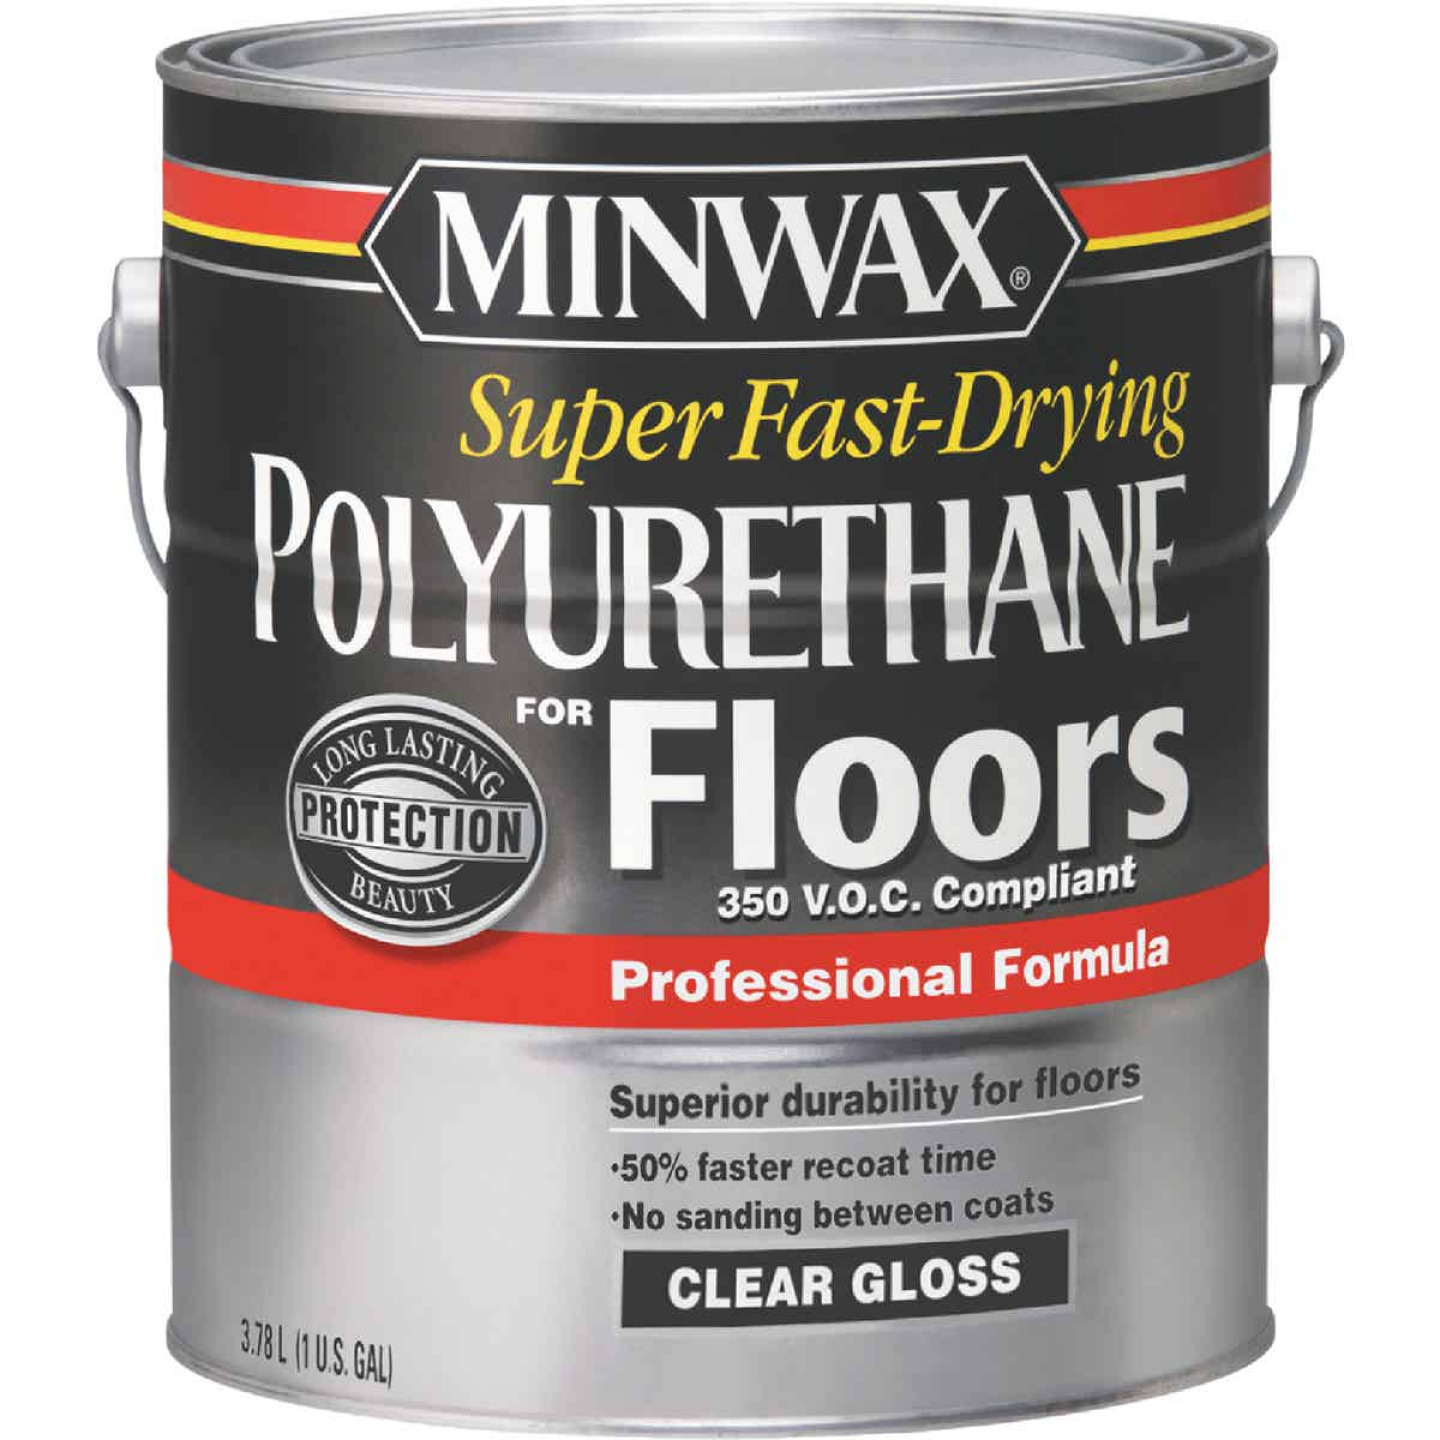 Minwax 1 Gallon Gloss VOC Fast Drying Polyurethane For Floor Image 1